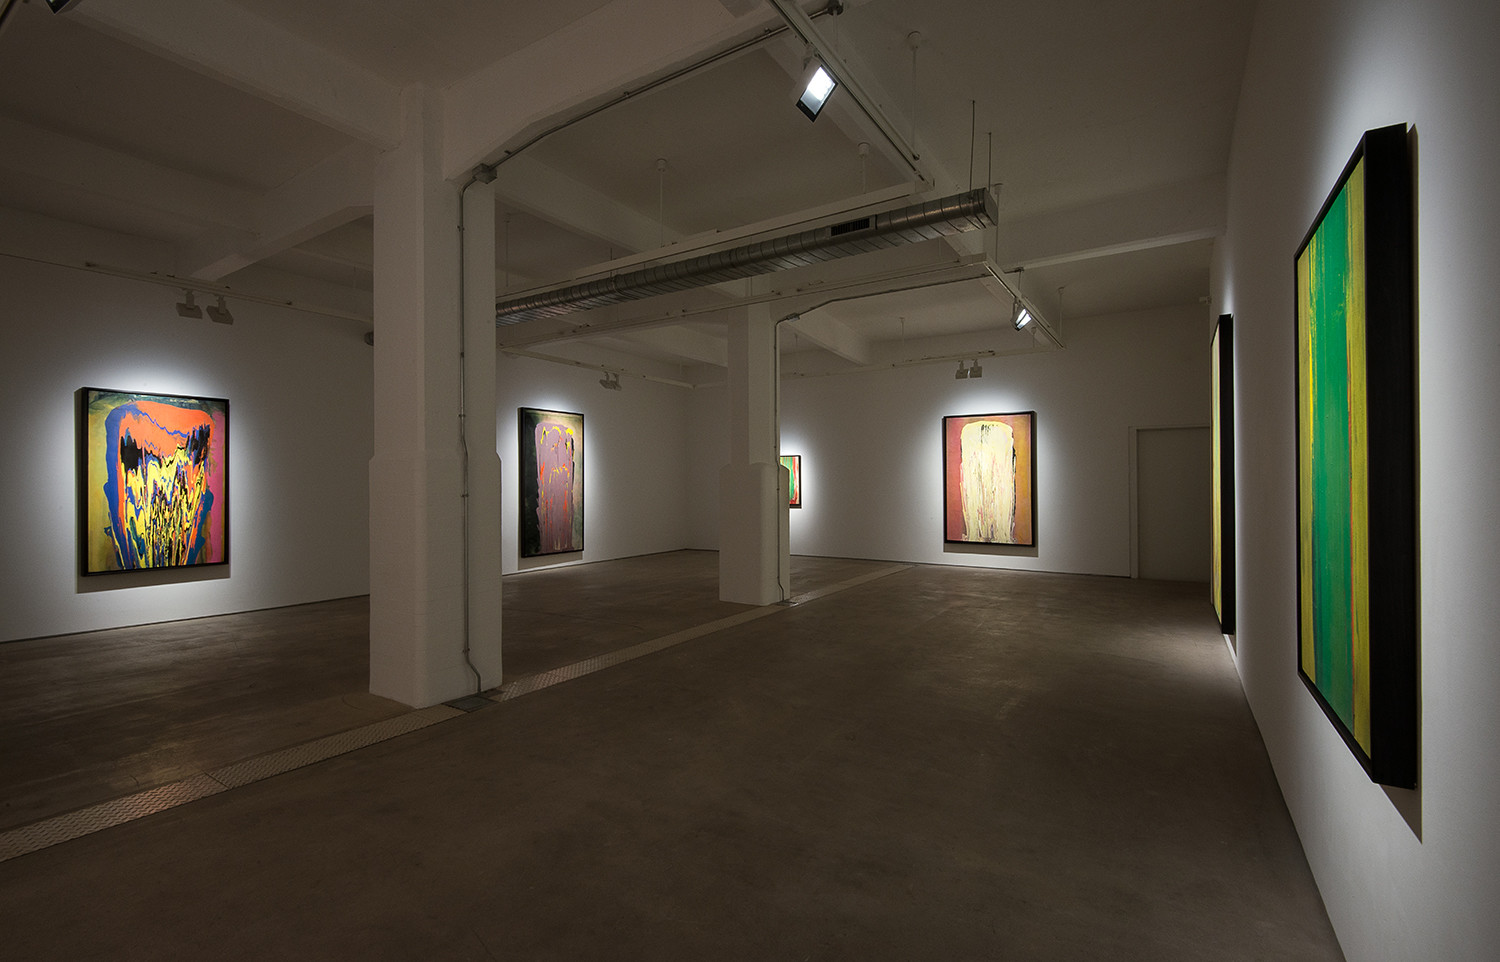 Frank Bowling, Installation view 'The Poured Paintings', Hales London, 11 September - 24 October 2015